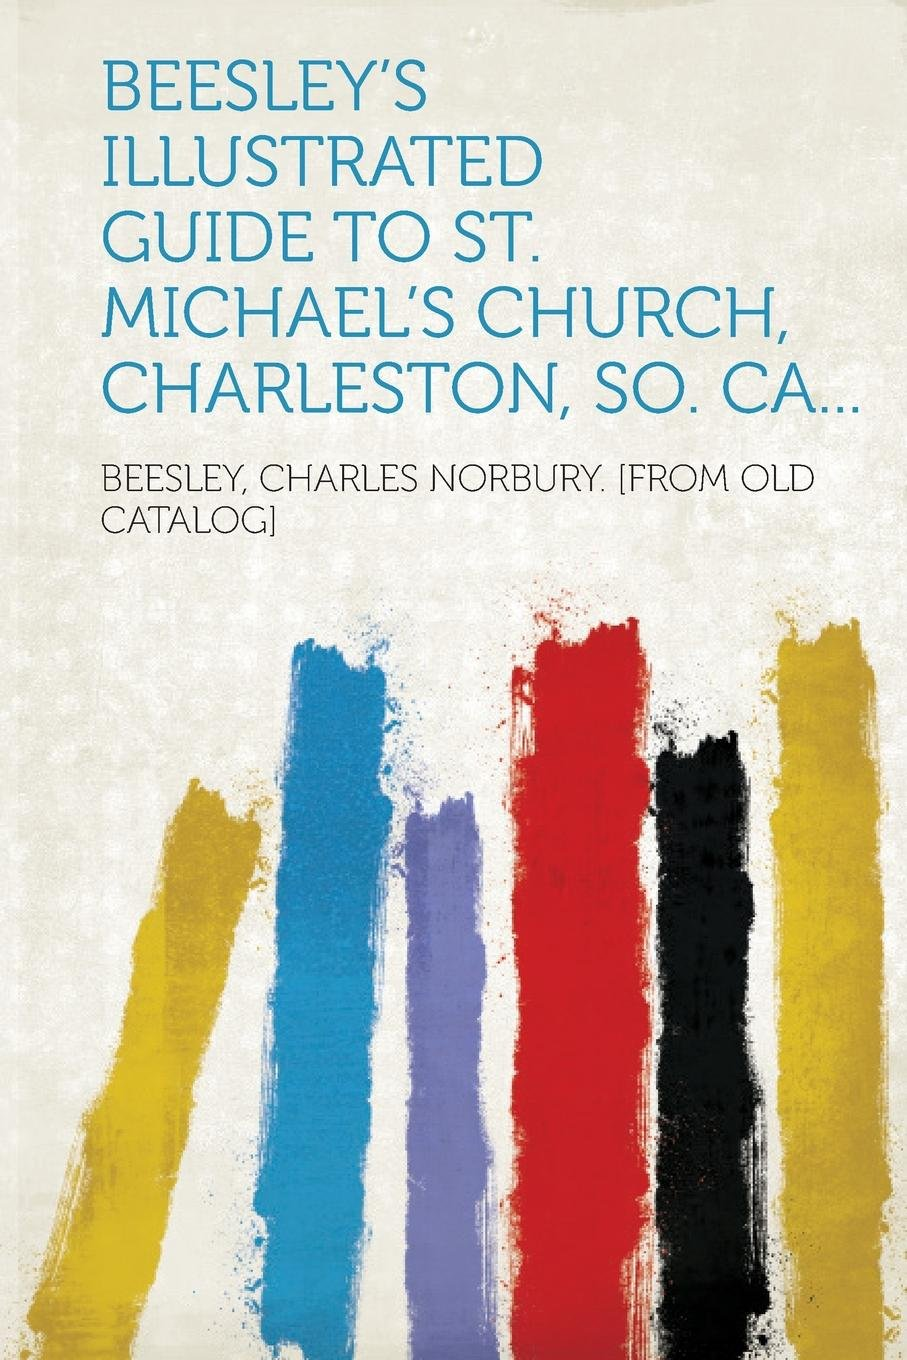 Beesley's Illustrated Guide to St. Michael's Church, Charleston, So. CA. ebook